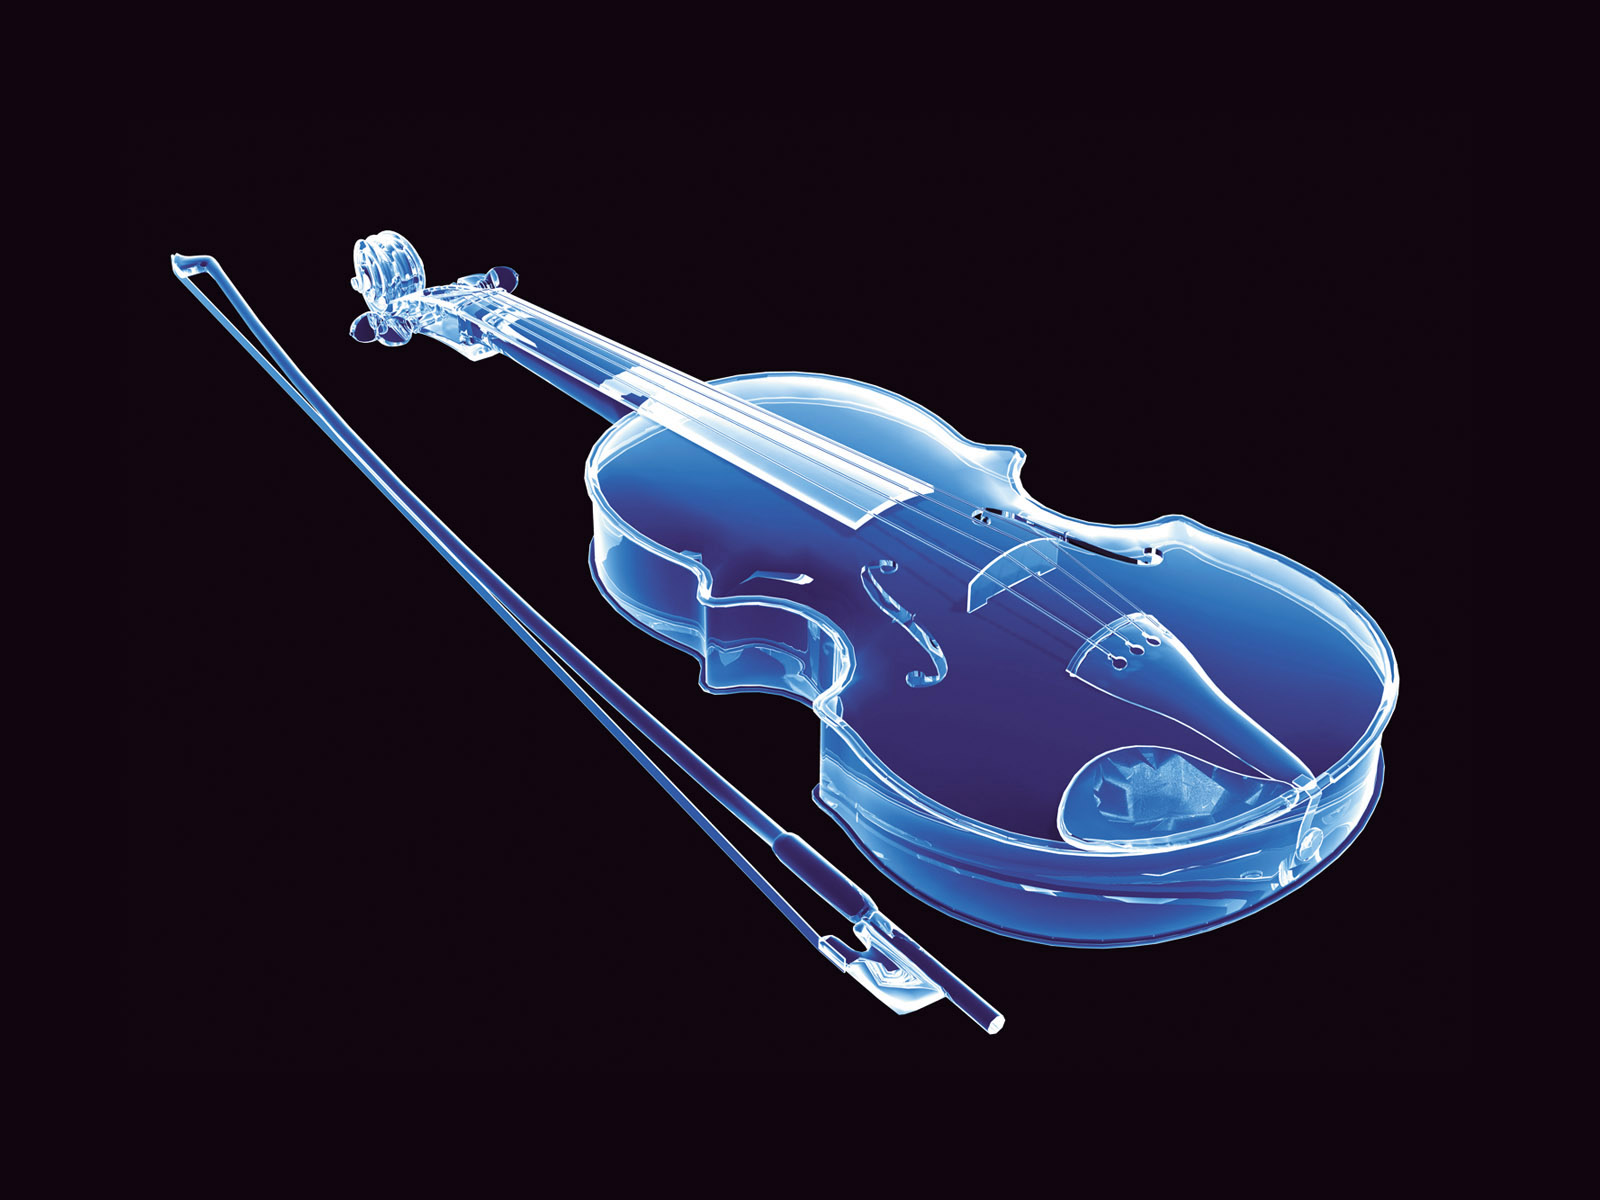 cool 3d wallpaper violin - photo #1